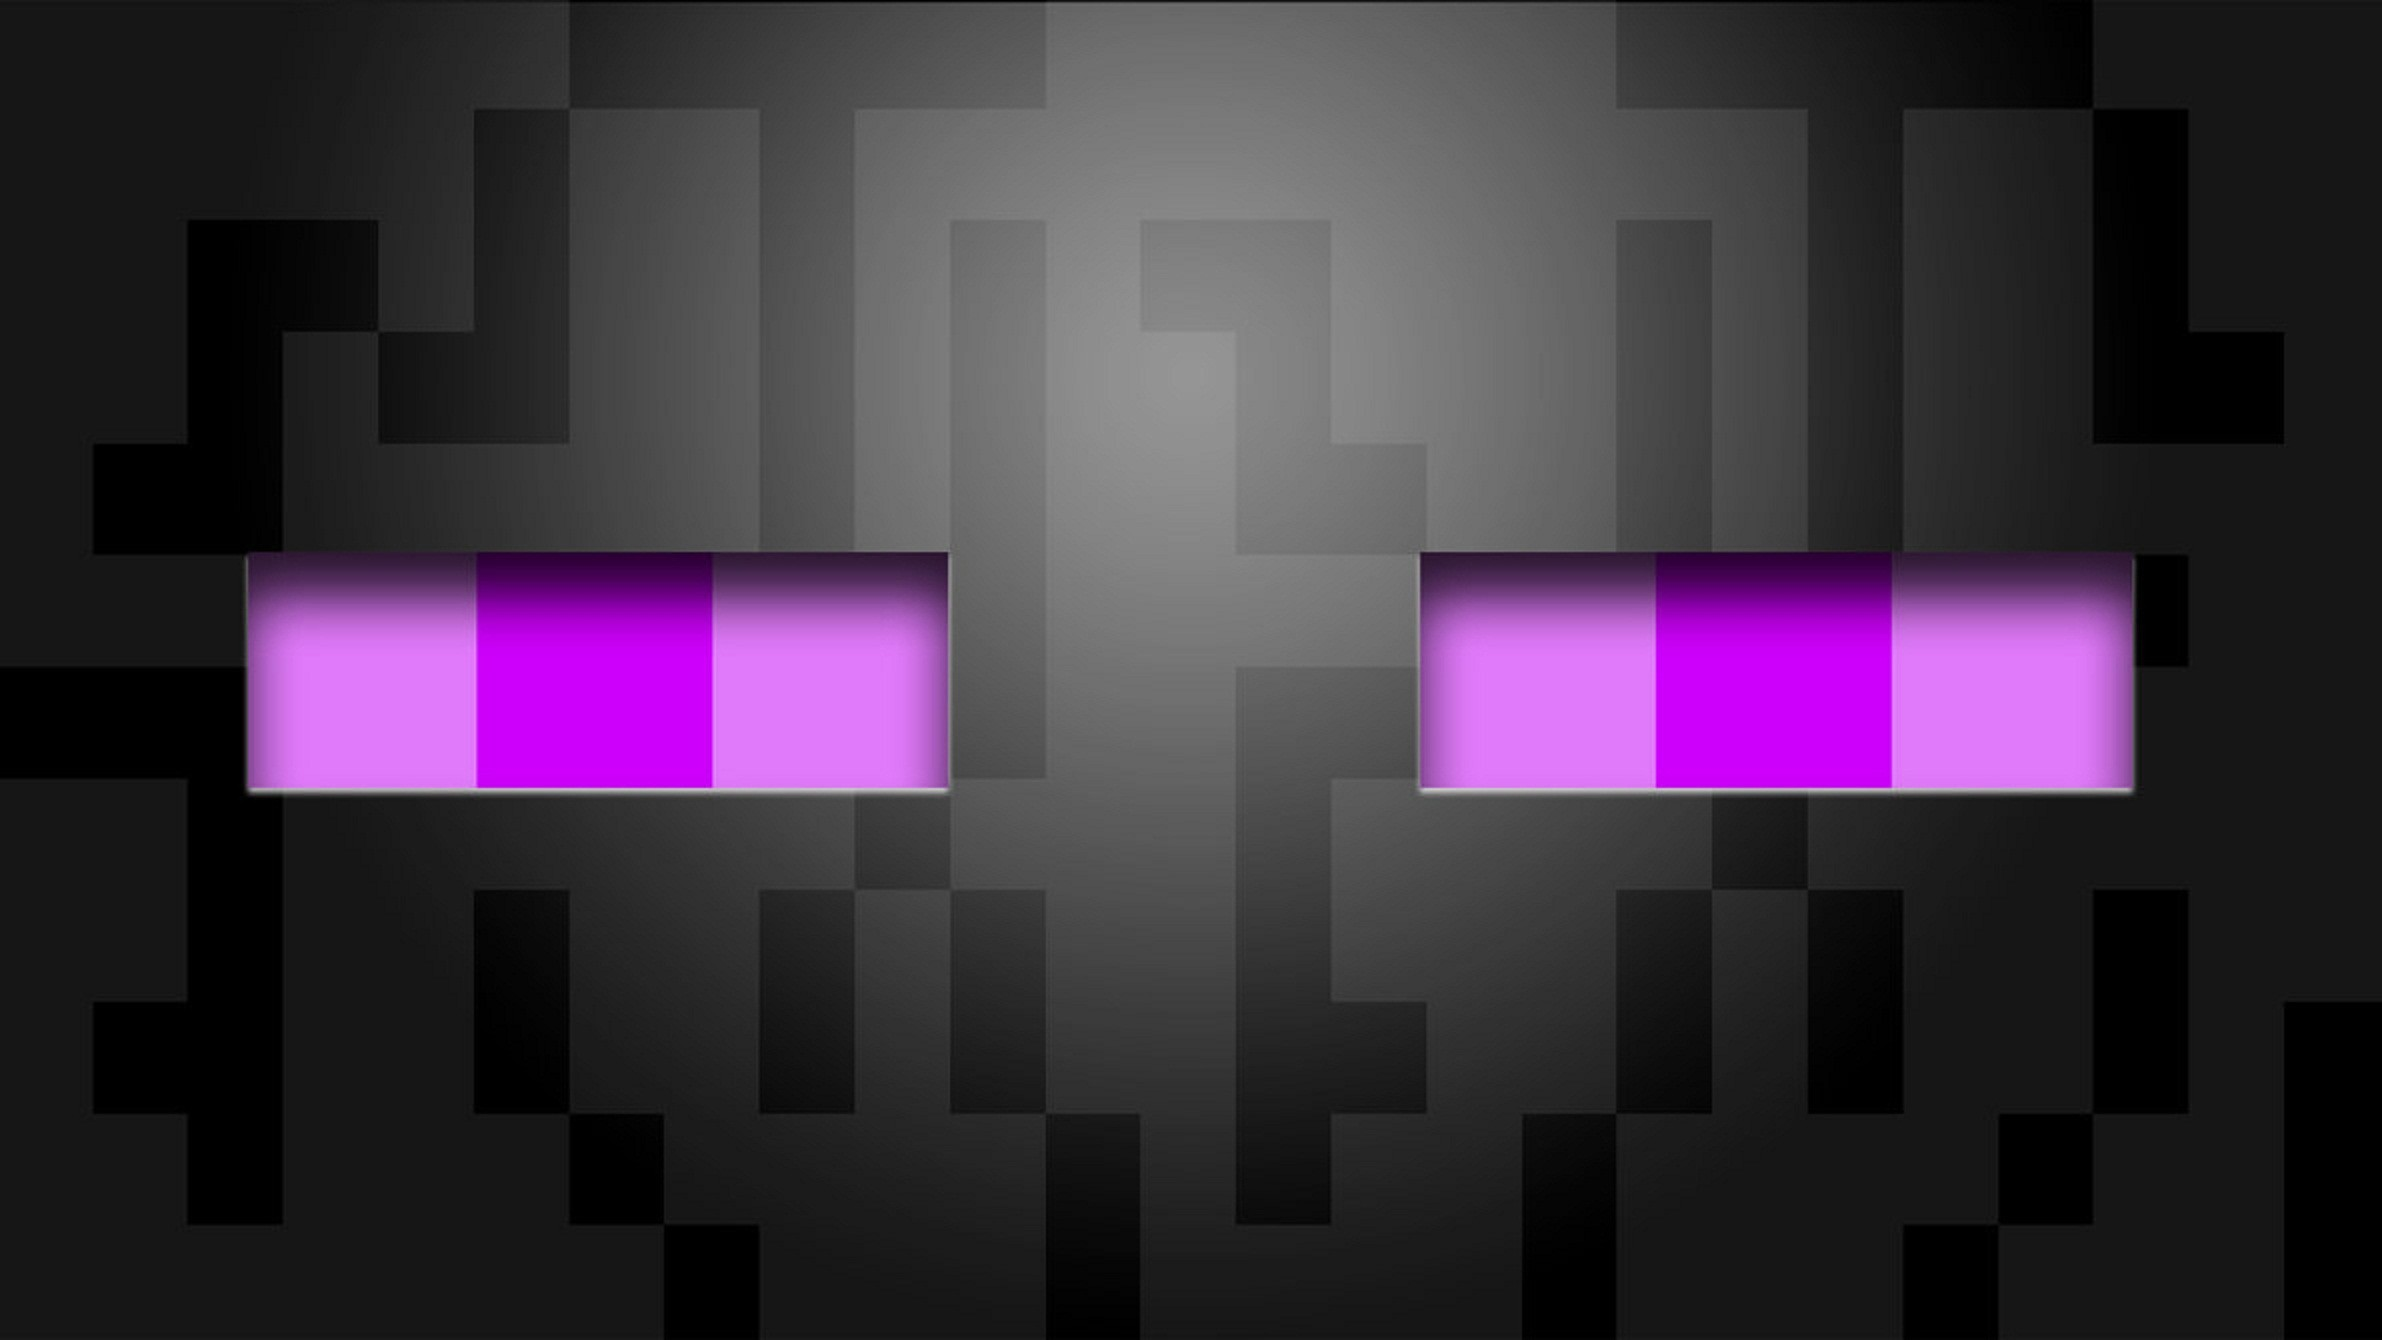 minecraft wallpaper – Free Large Images | For my boys | Pinterest |  Minecraft wallpaper and Minecraft website